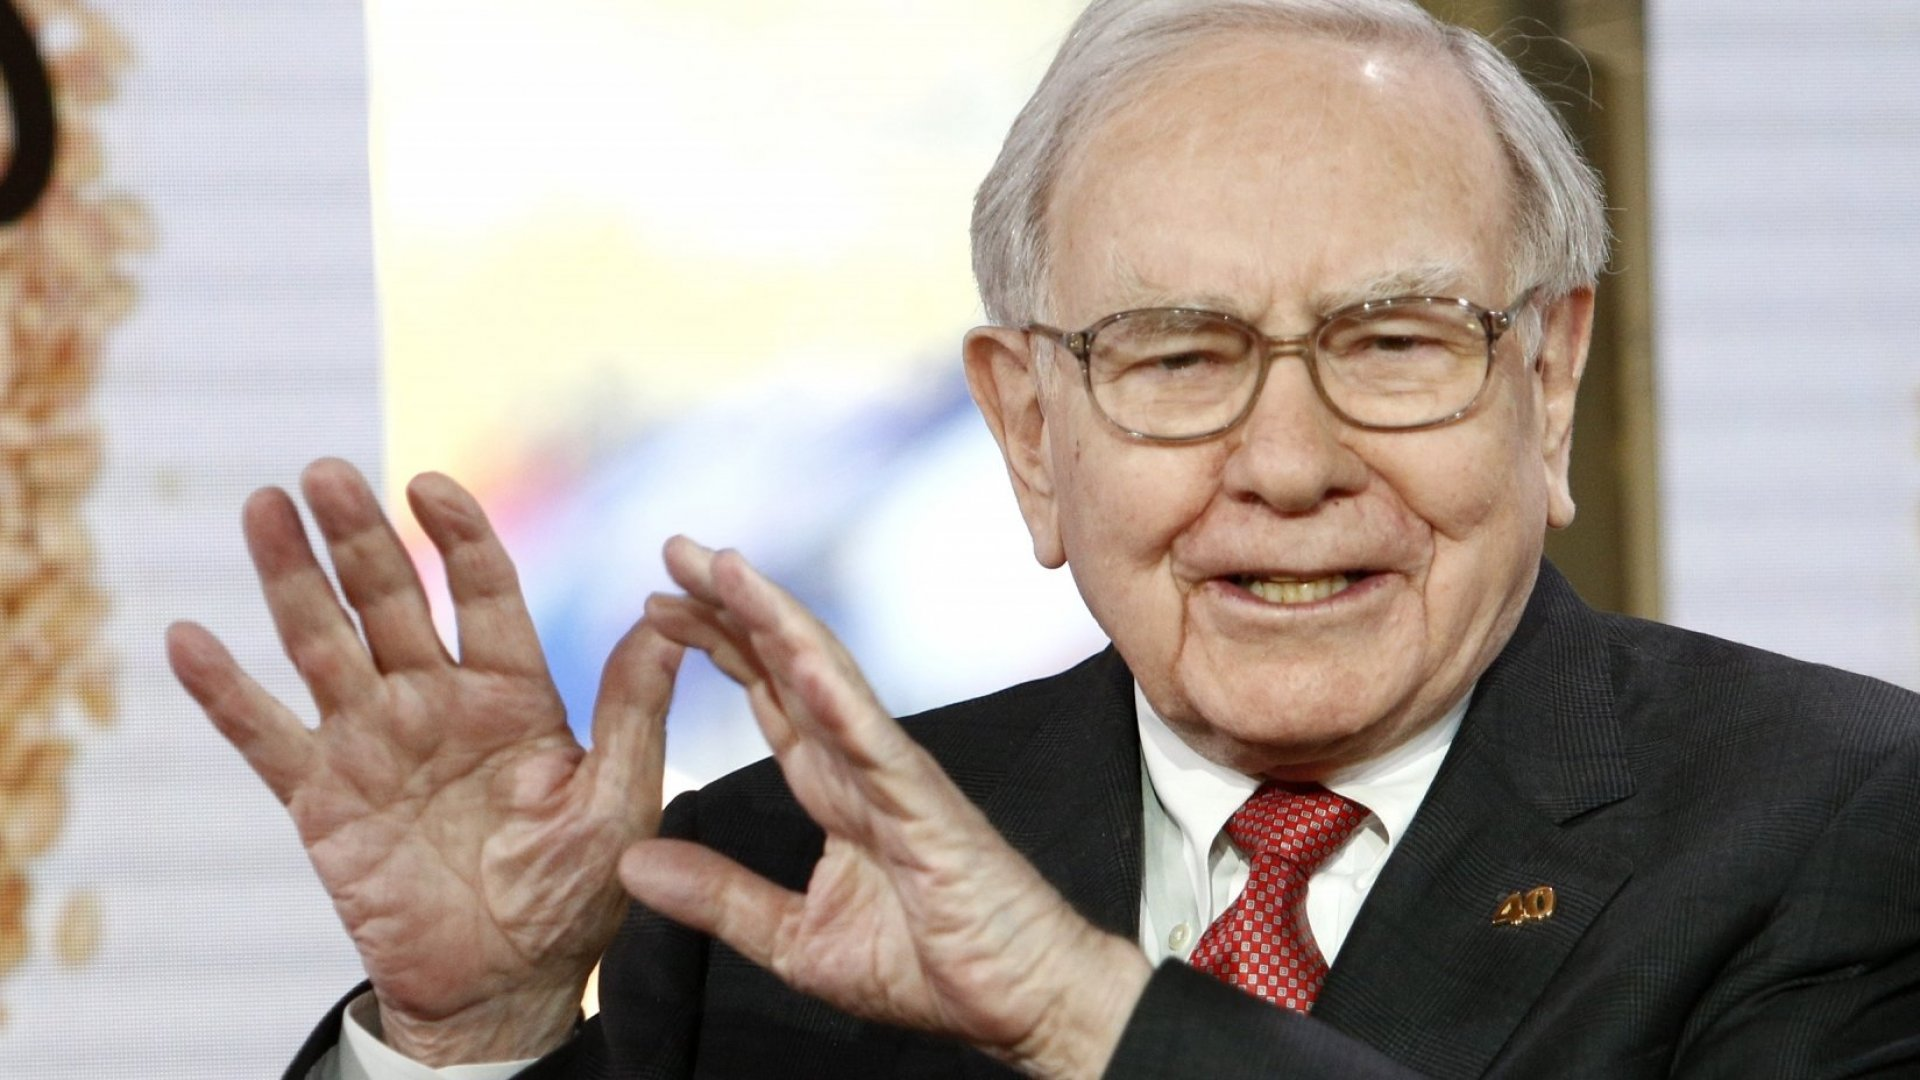 Warren Buffett on the 3 Things That Made Him Successful